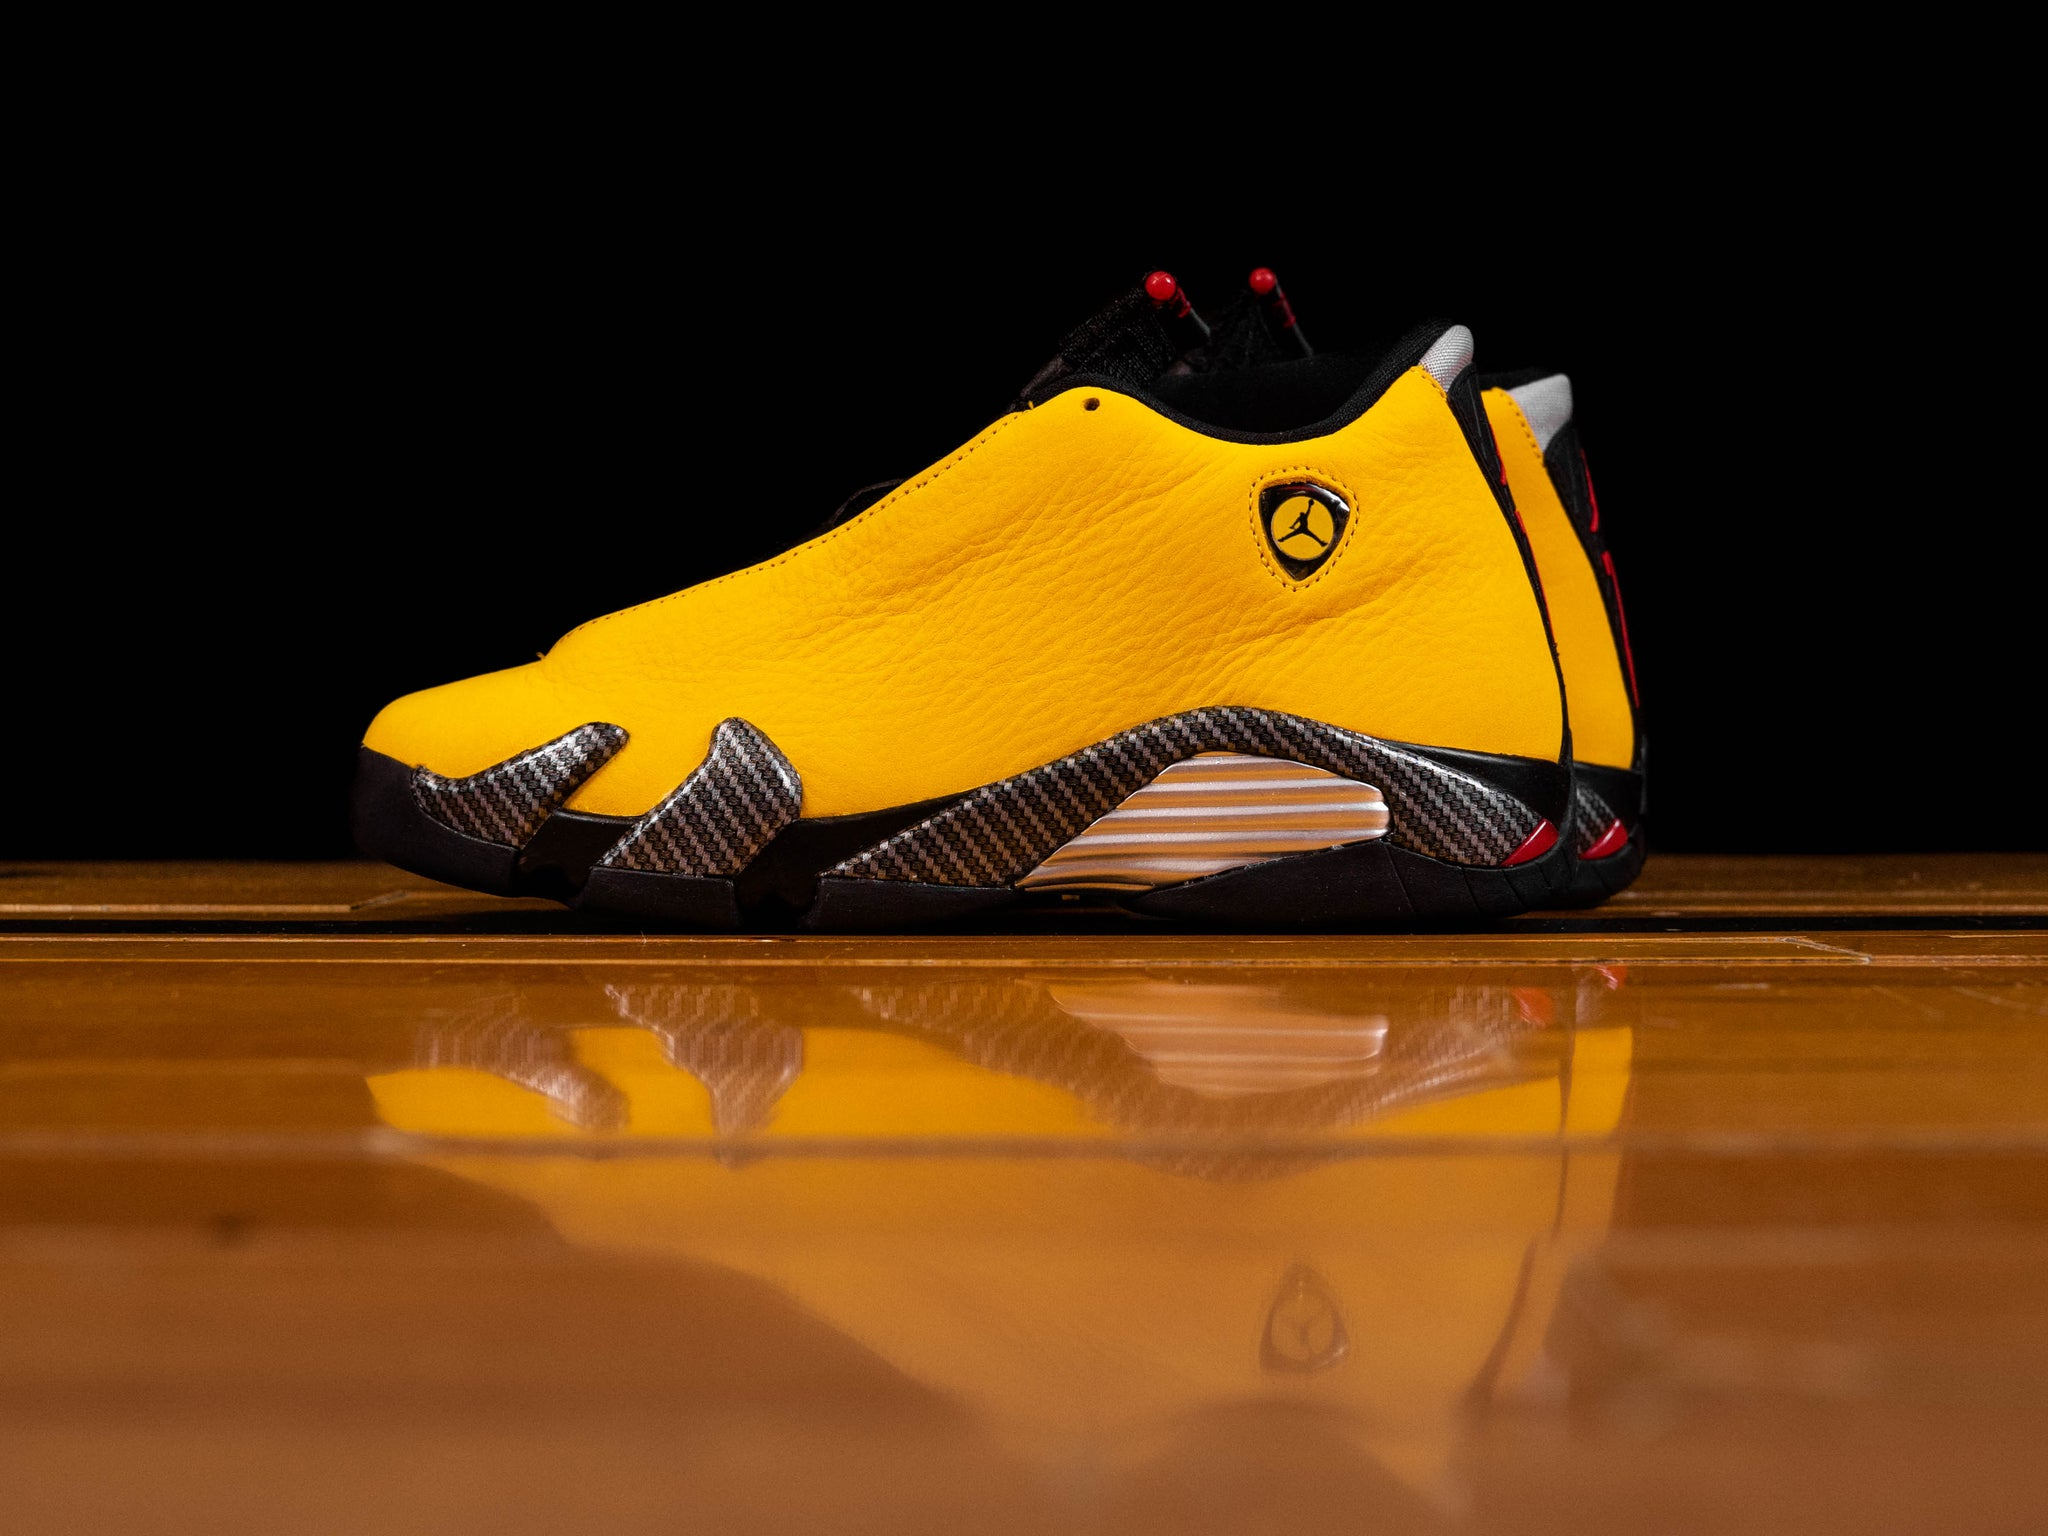 new product 3b053 f2bd4 Kid's Air Jordan 14 Retro 'Reverse Ferrari' [BV1218-706]